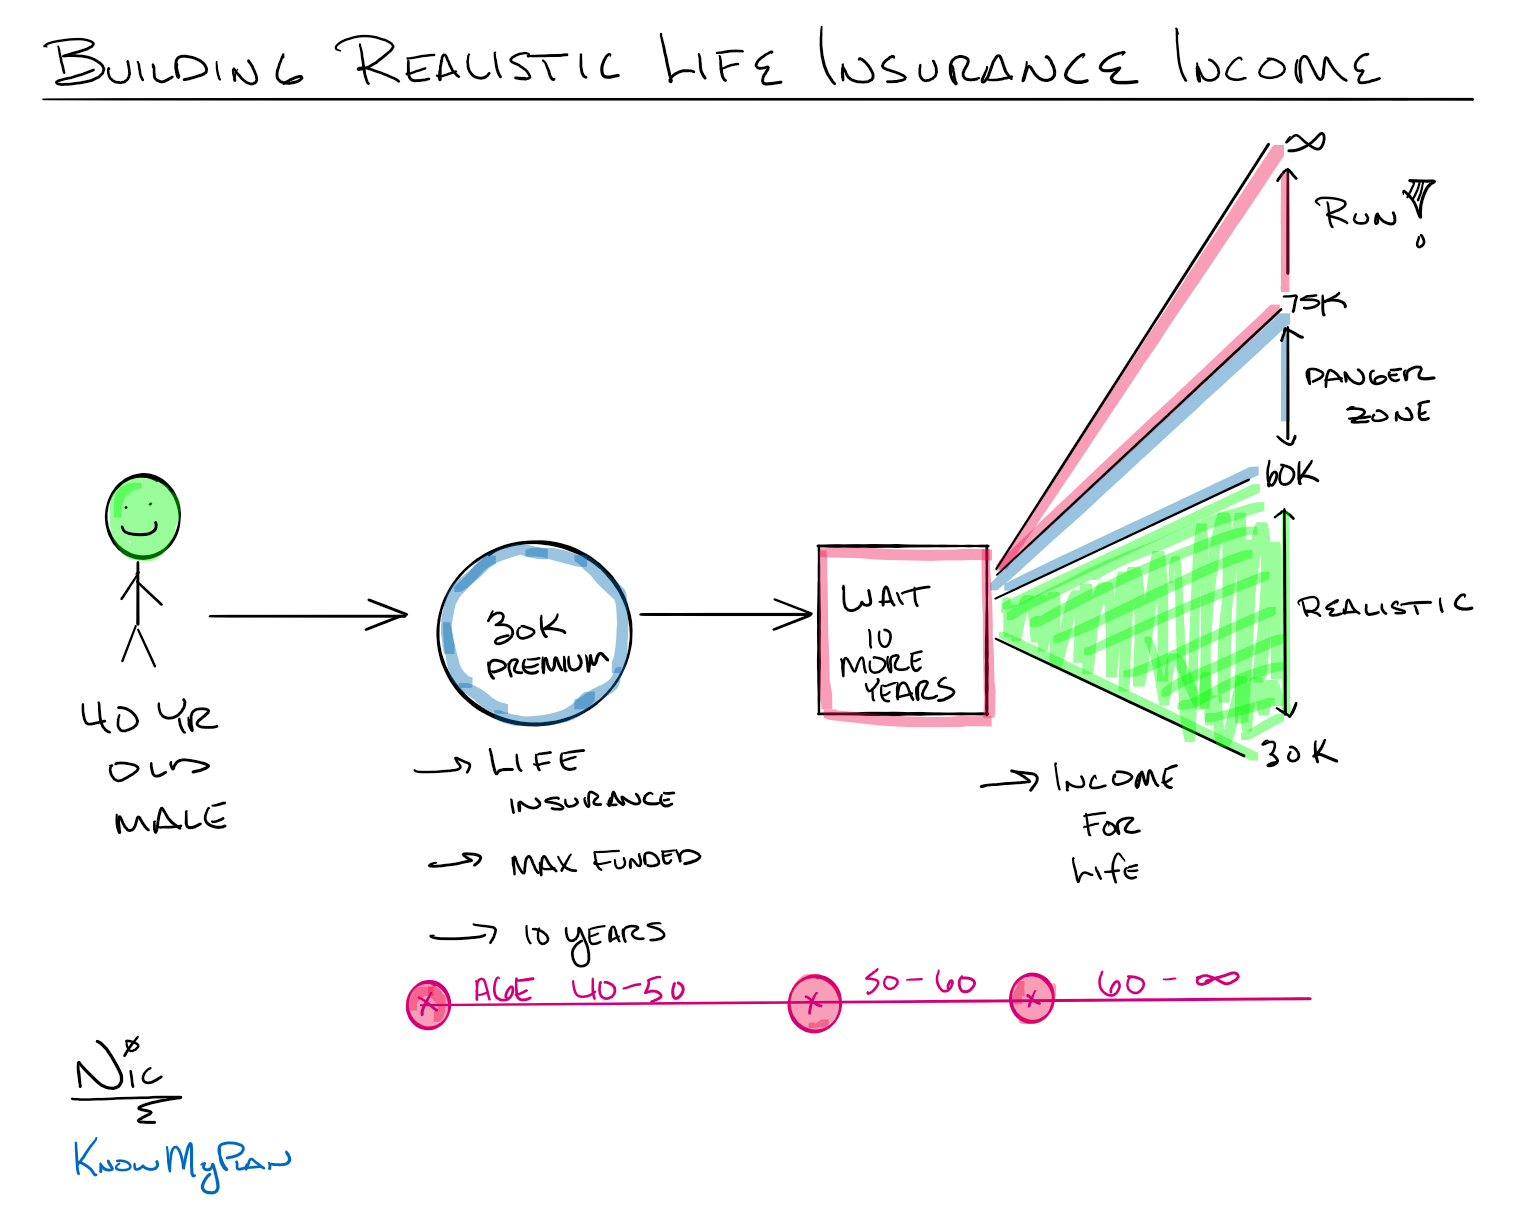 Building Realistic Life Insurance Income Thumbnail